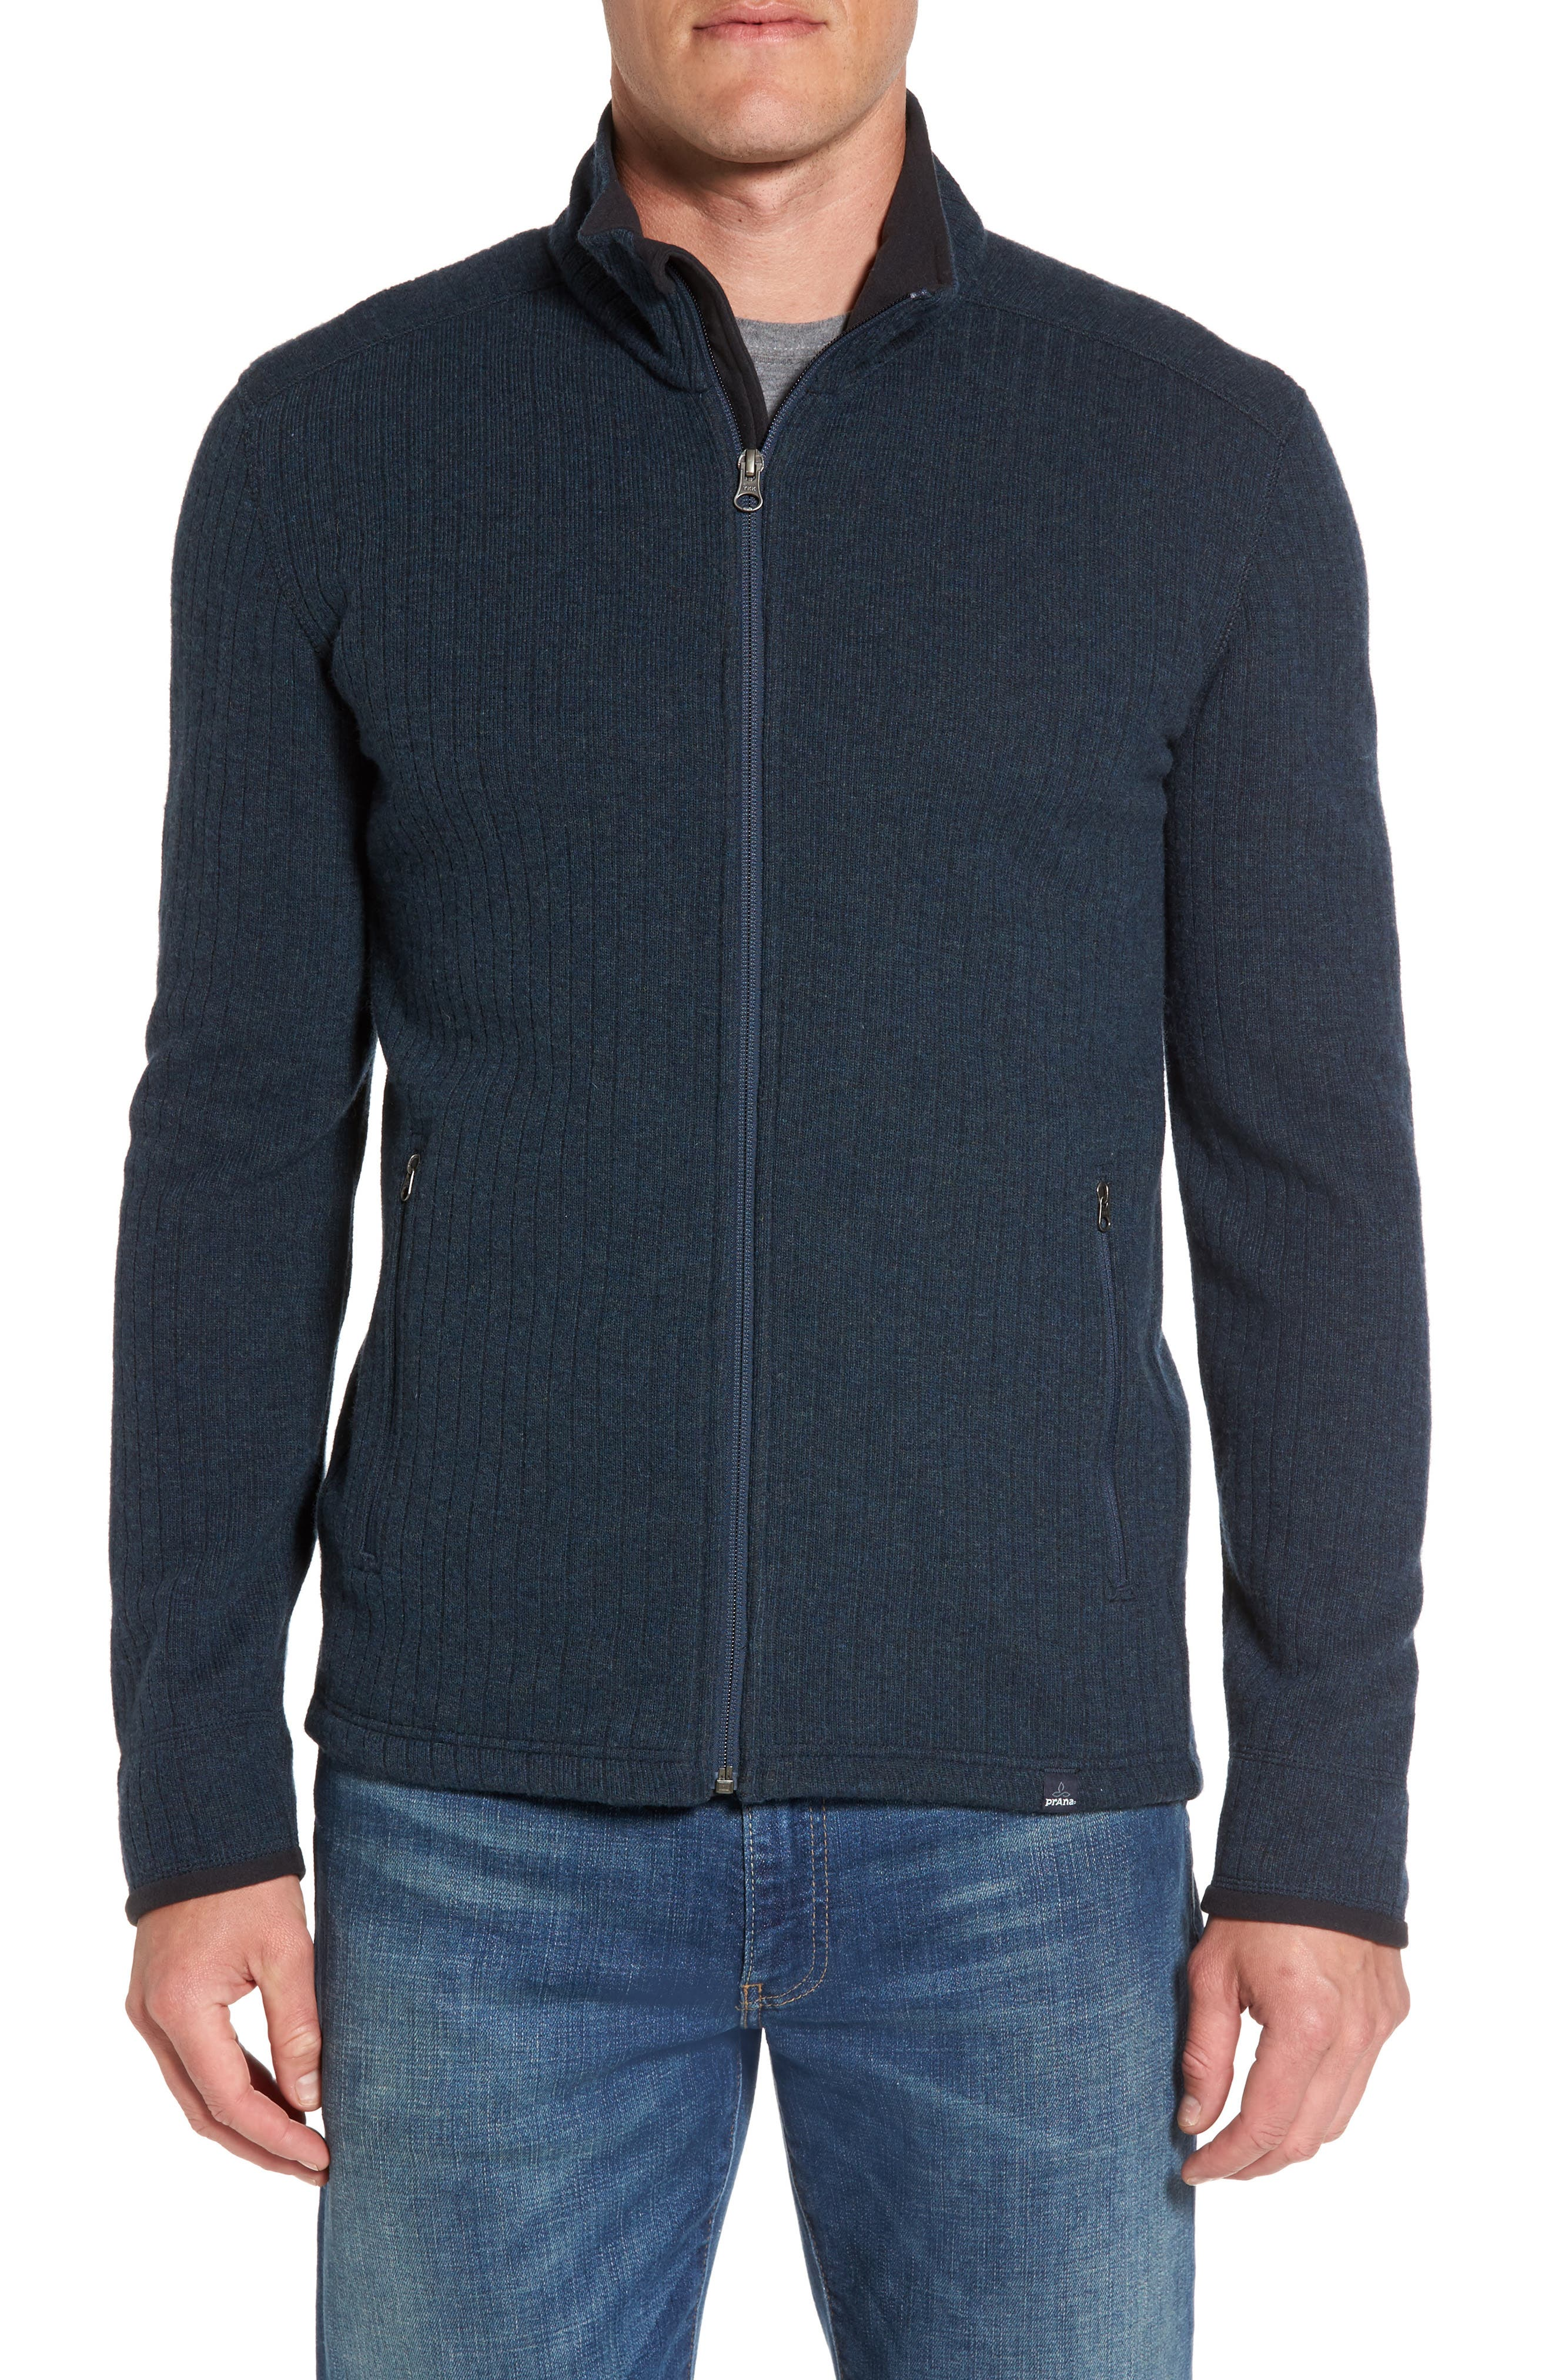 prAna 'Barclay' Full Zip Rib Knit Sweater